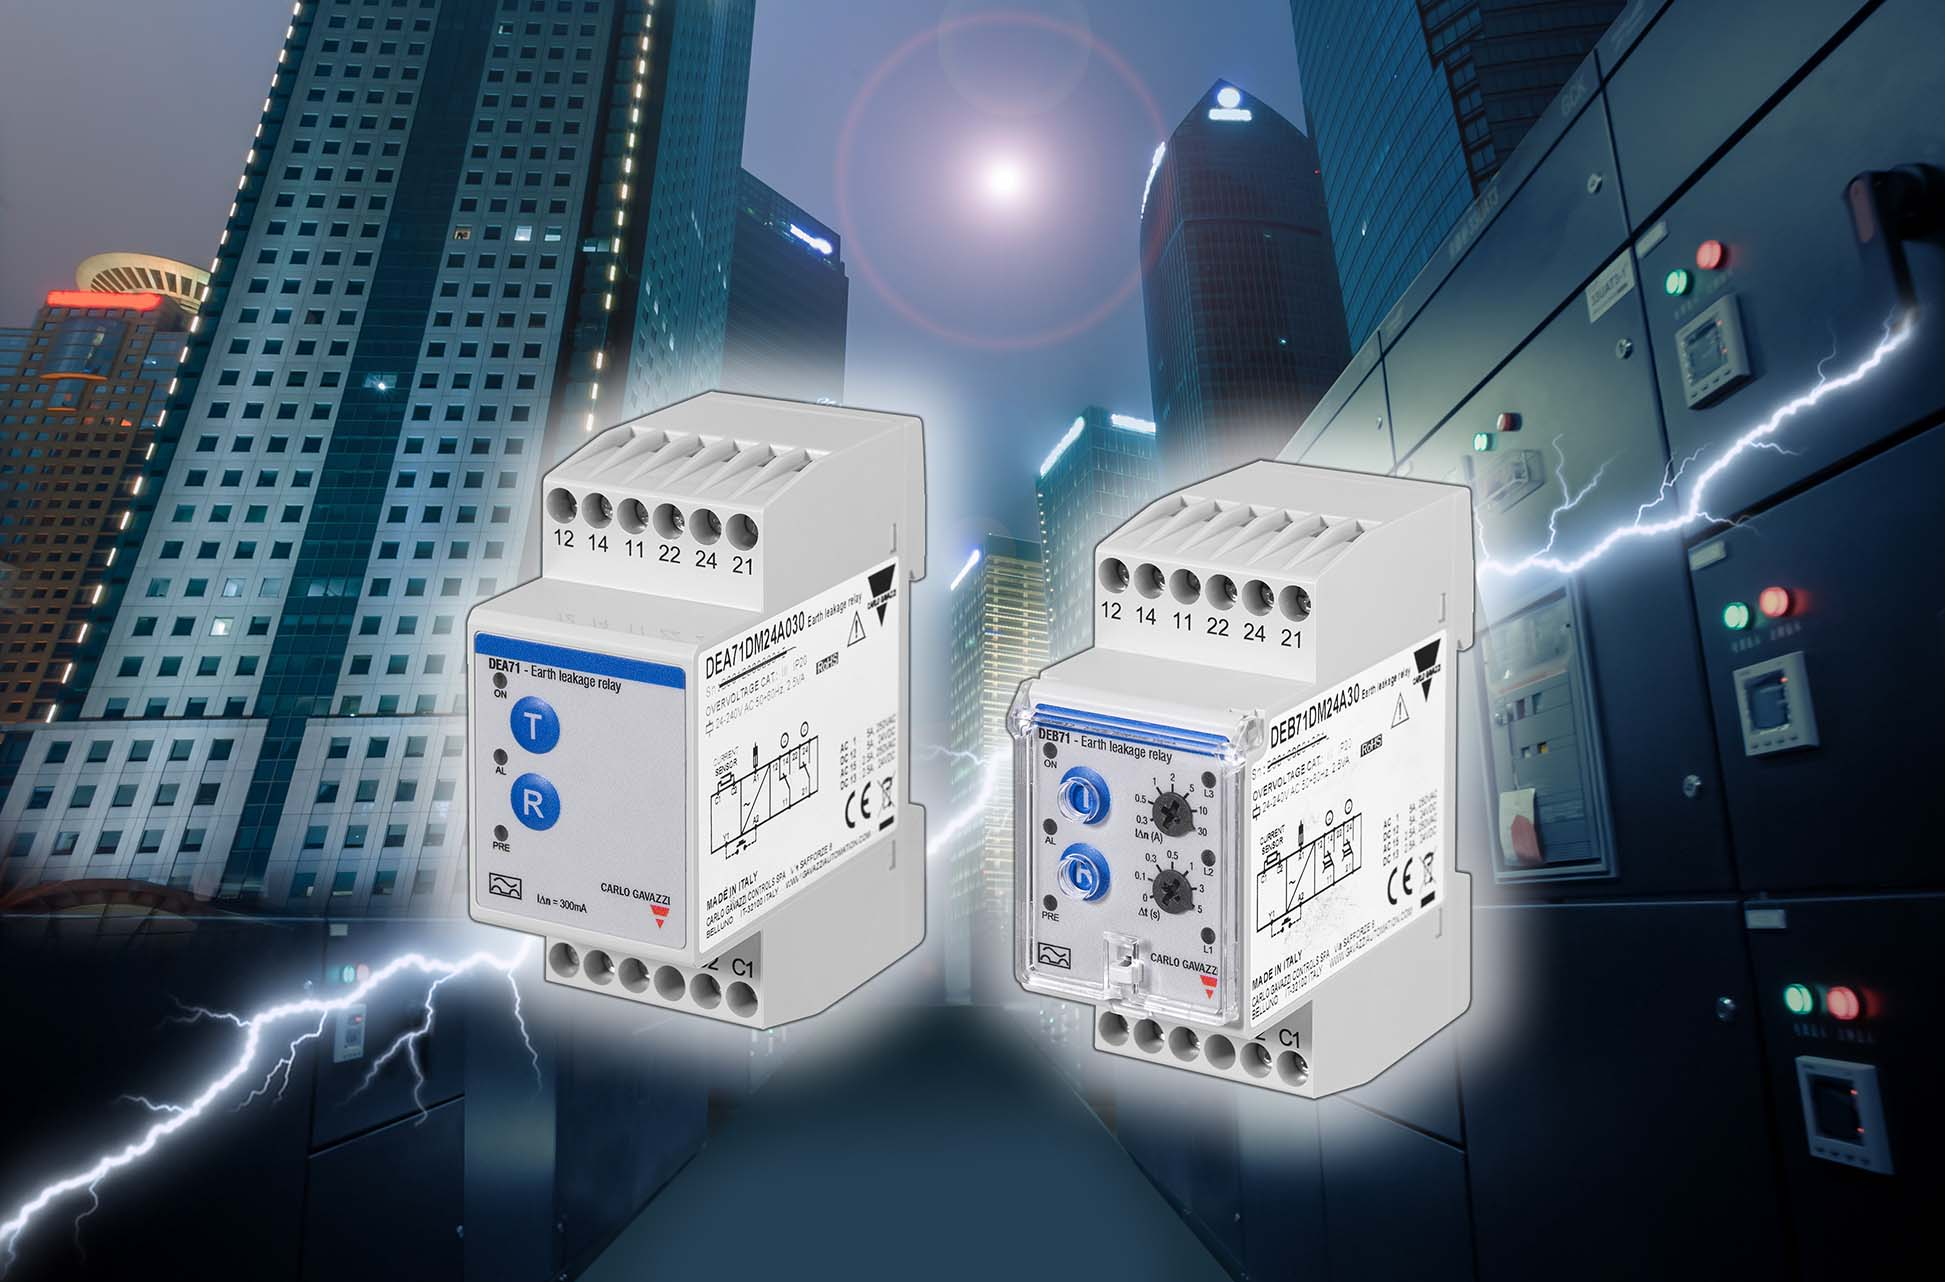 Earth Leakage Monitoring Relays Dea71 And Deb71 Power Changeover Relay Of Used To Detect Current Which Can Be Potentially Dangerous When Un Detected In Electrical Networks